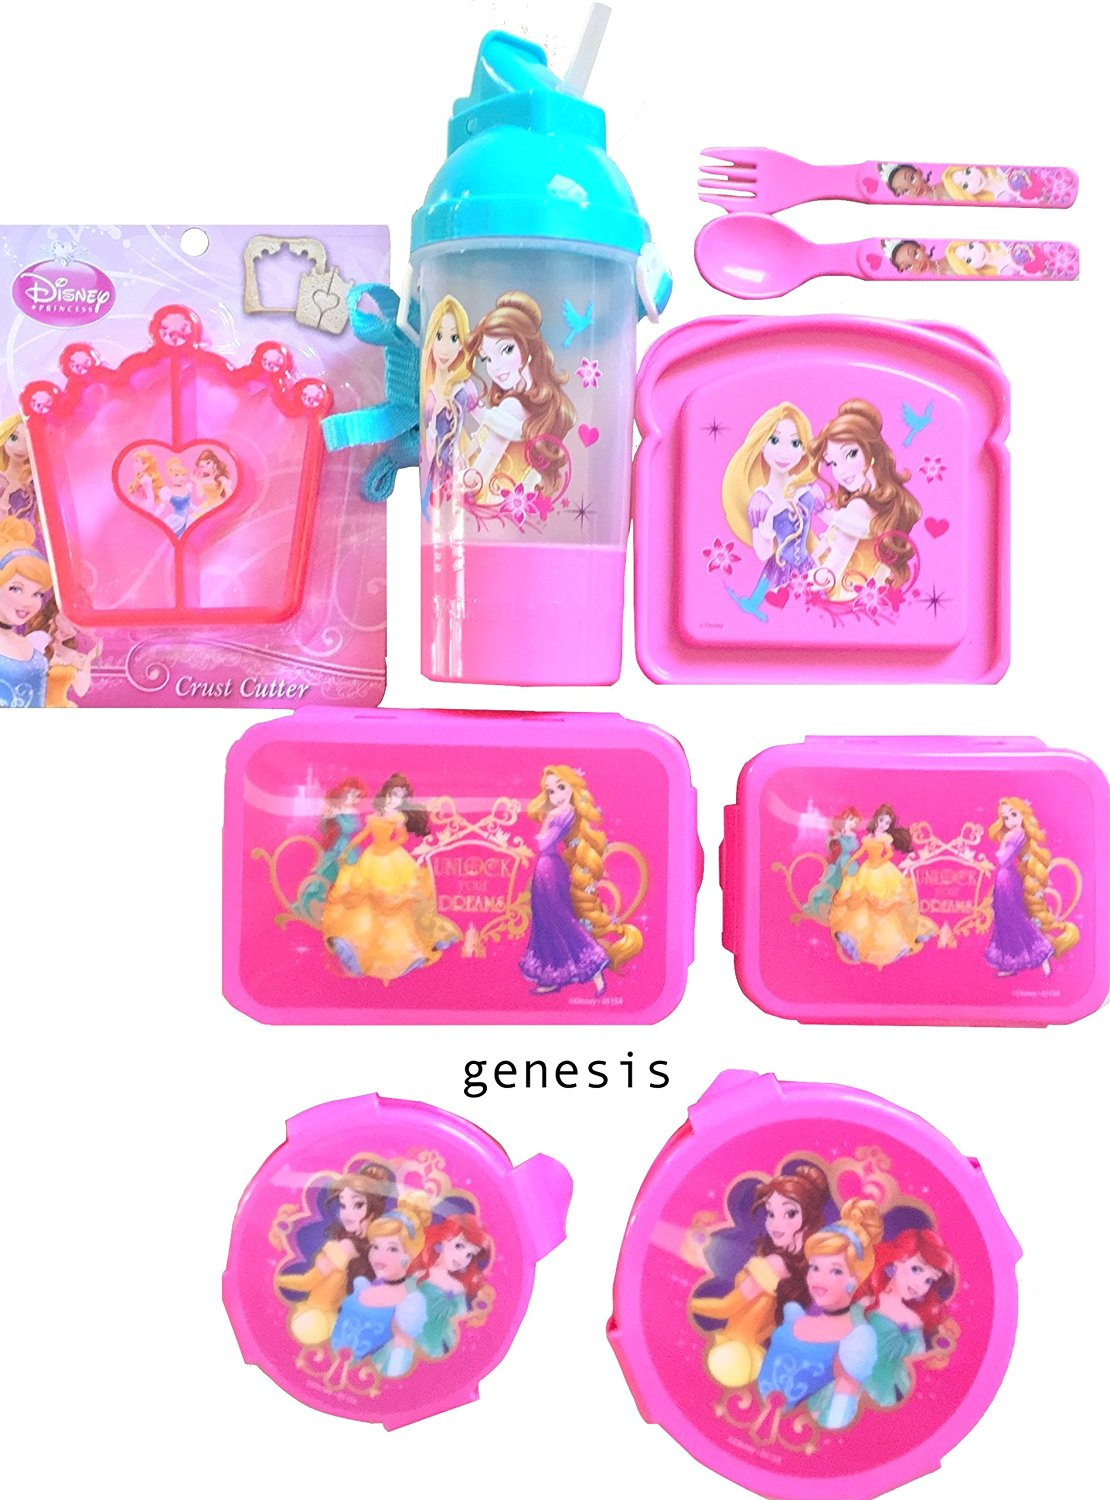 Disney Princesses 8 Pc Children's Lunch Gift Set With Snack & Food Storages, Bottle, Crust Cutter & Utensils